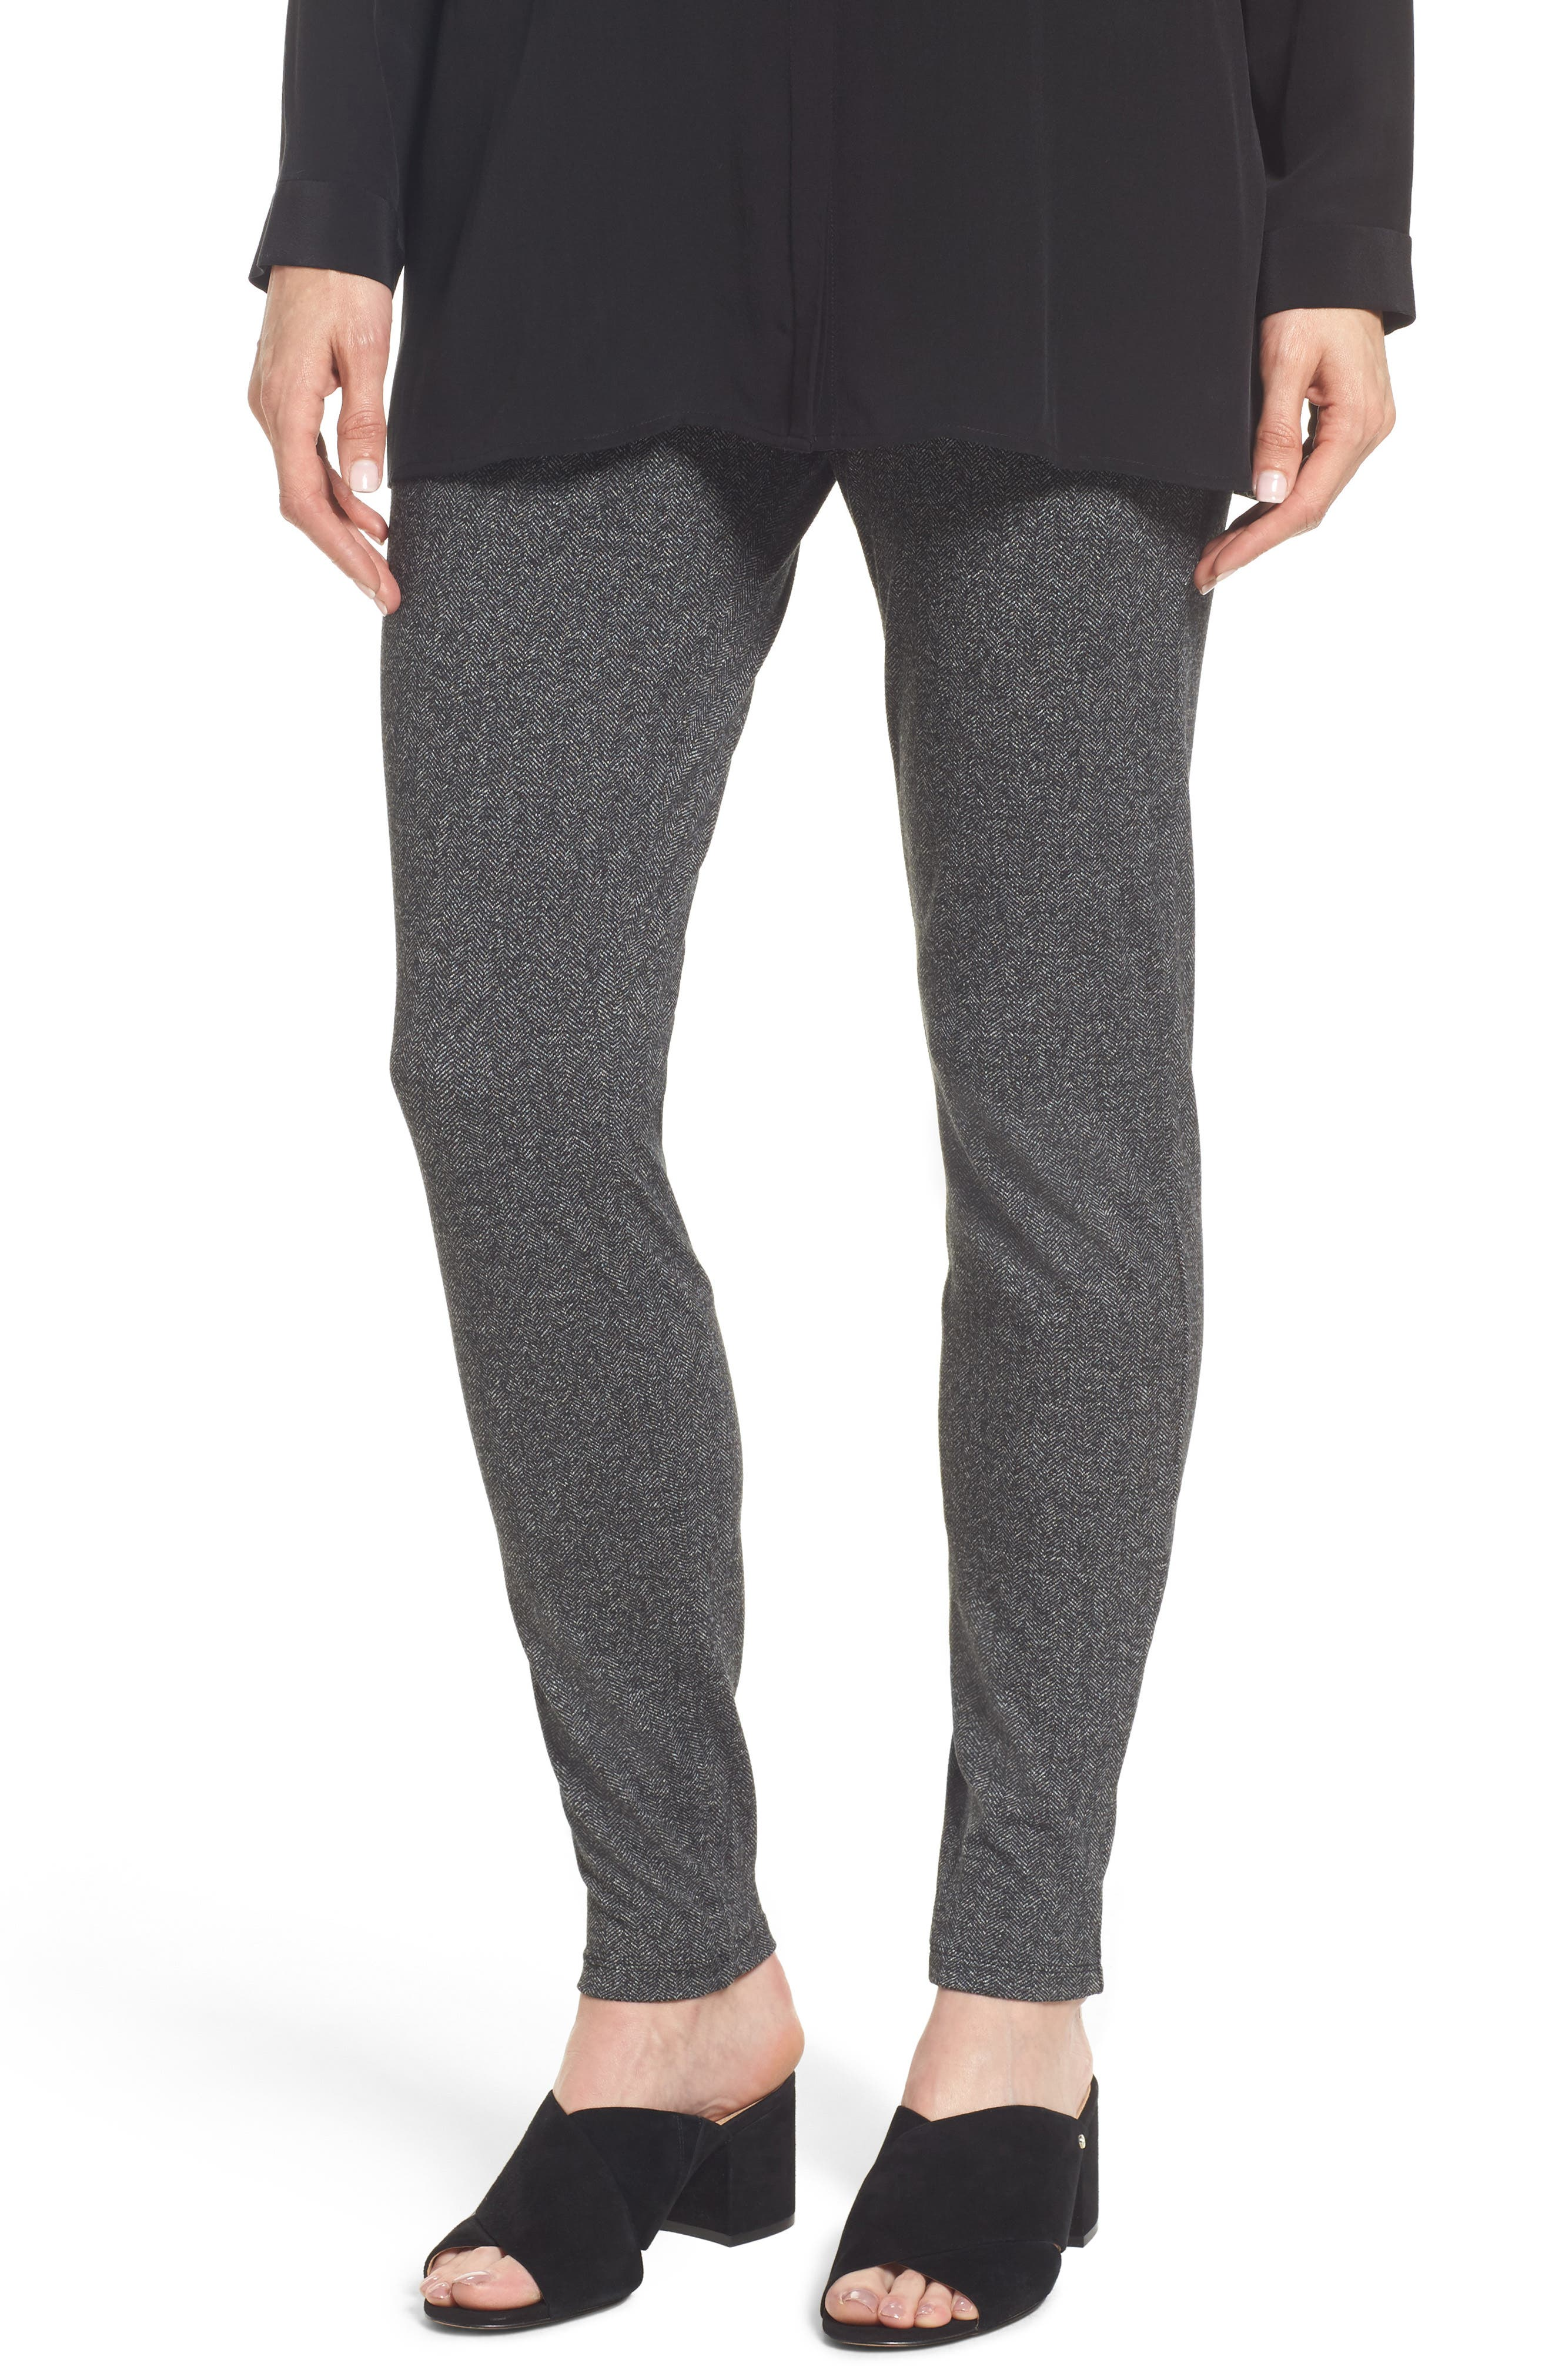 Herringbone Leggings,                             Main thumbnail 1, color,                             Charcoal